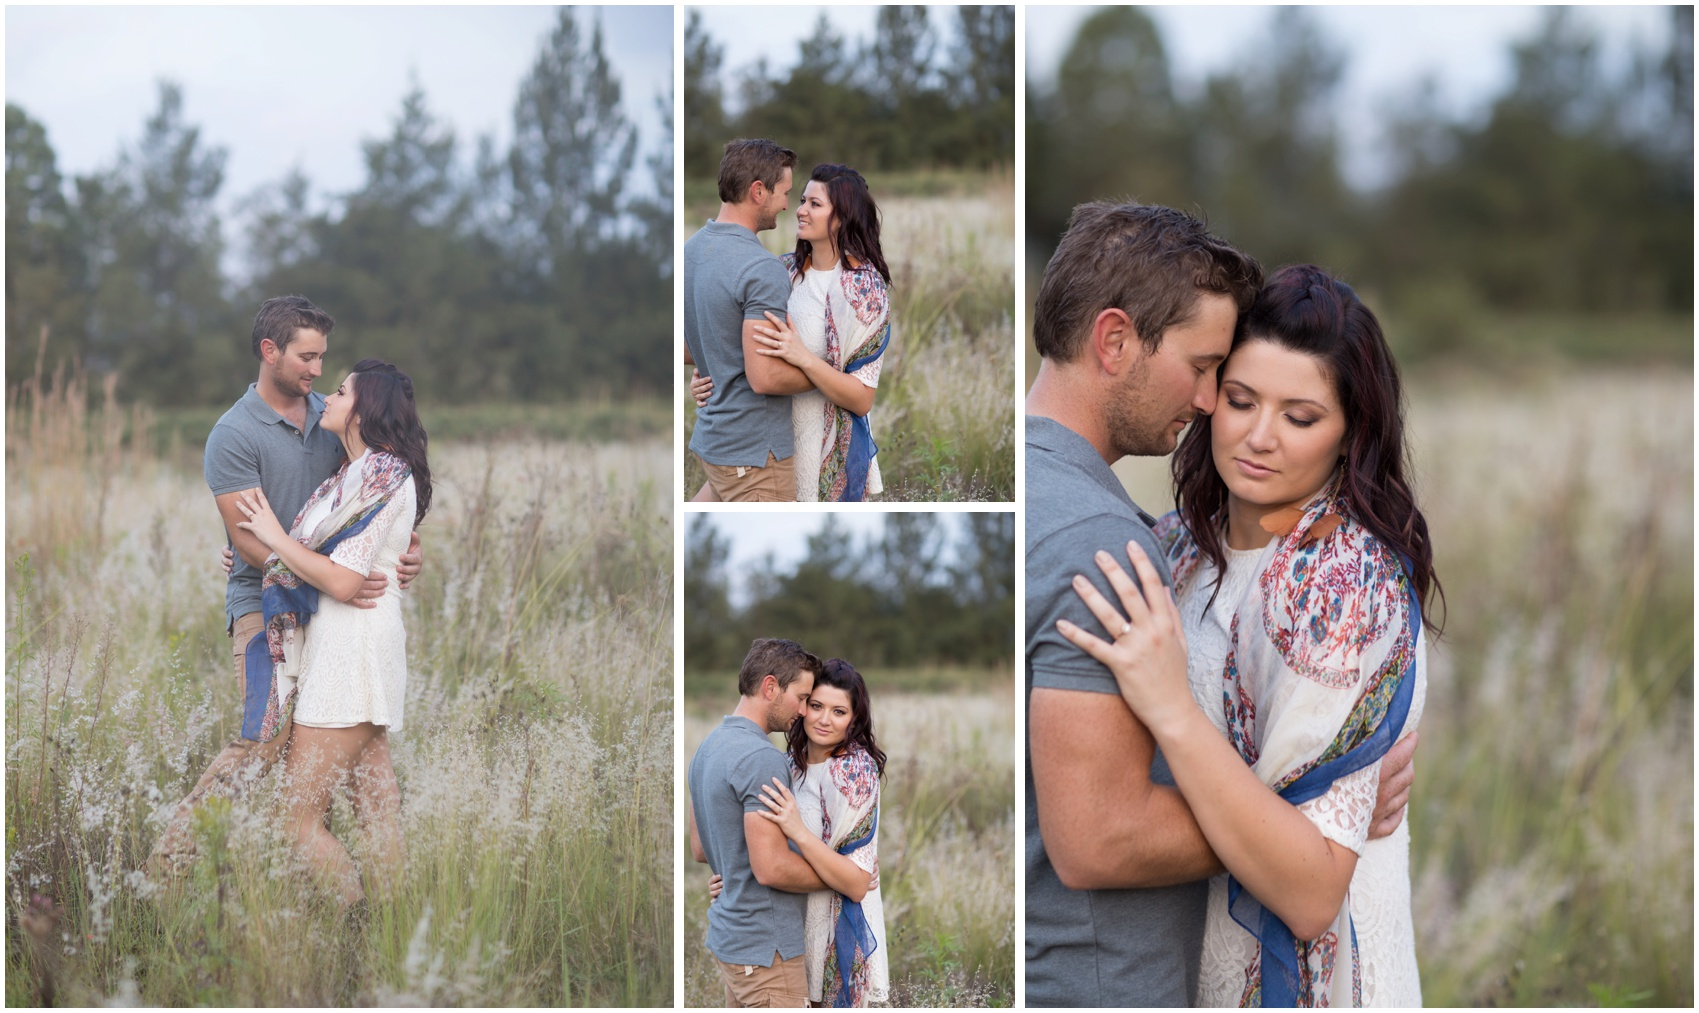 rosemary_hill_engagement_shoot_stephanie_and_jannie_16